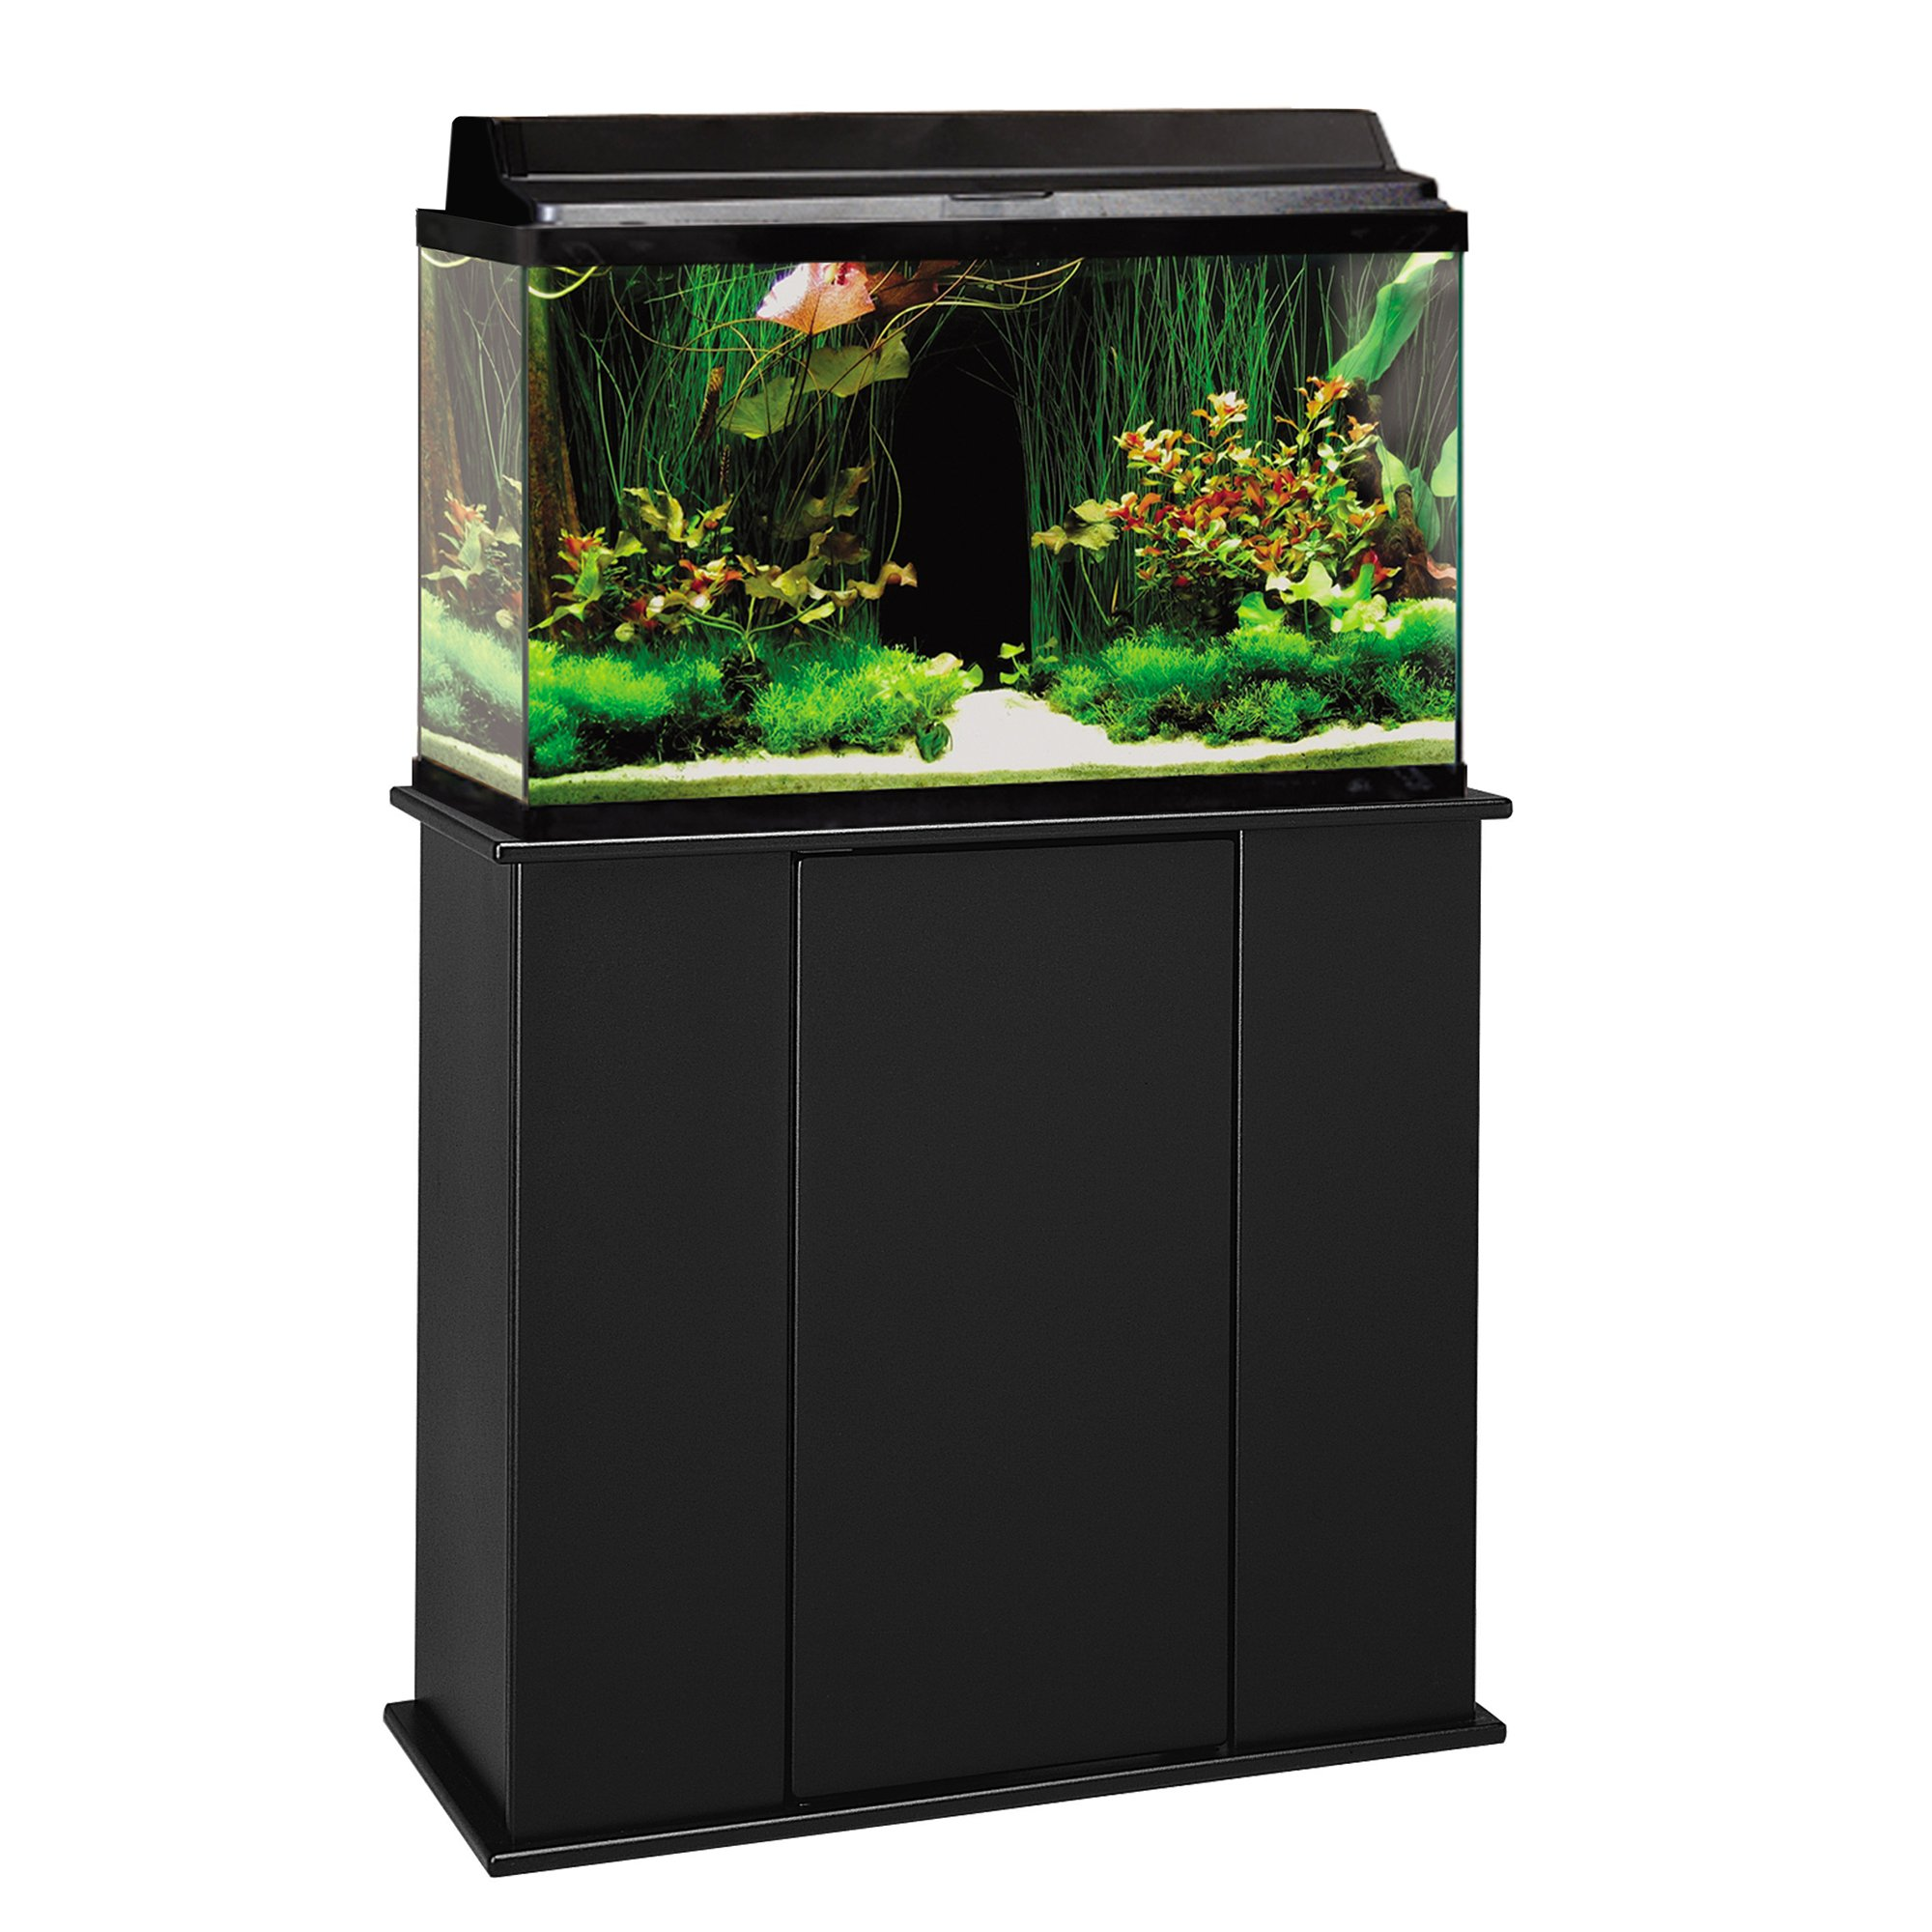 Fish tank ensemble - Aquatic Fundamentals 29 37 Gallon Upright Aquarium Stand